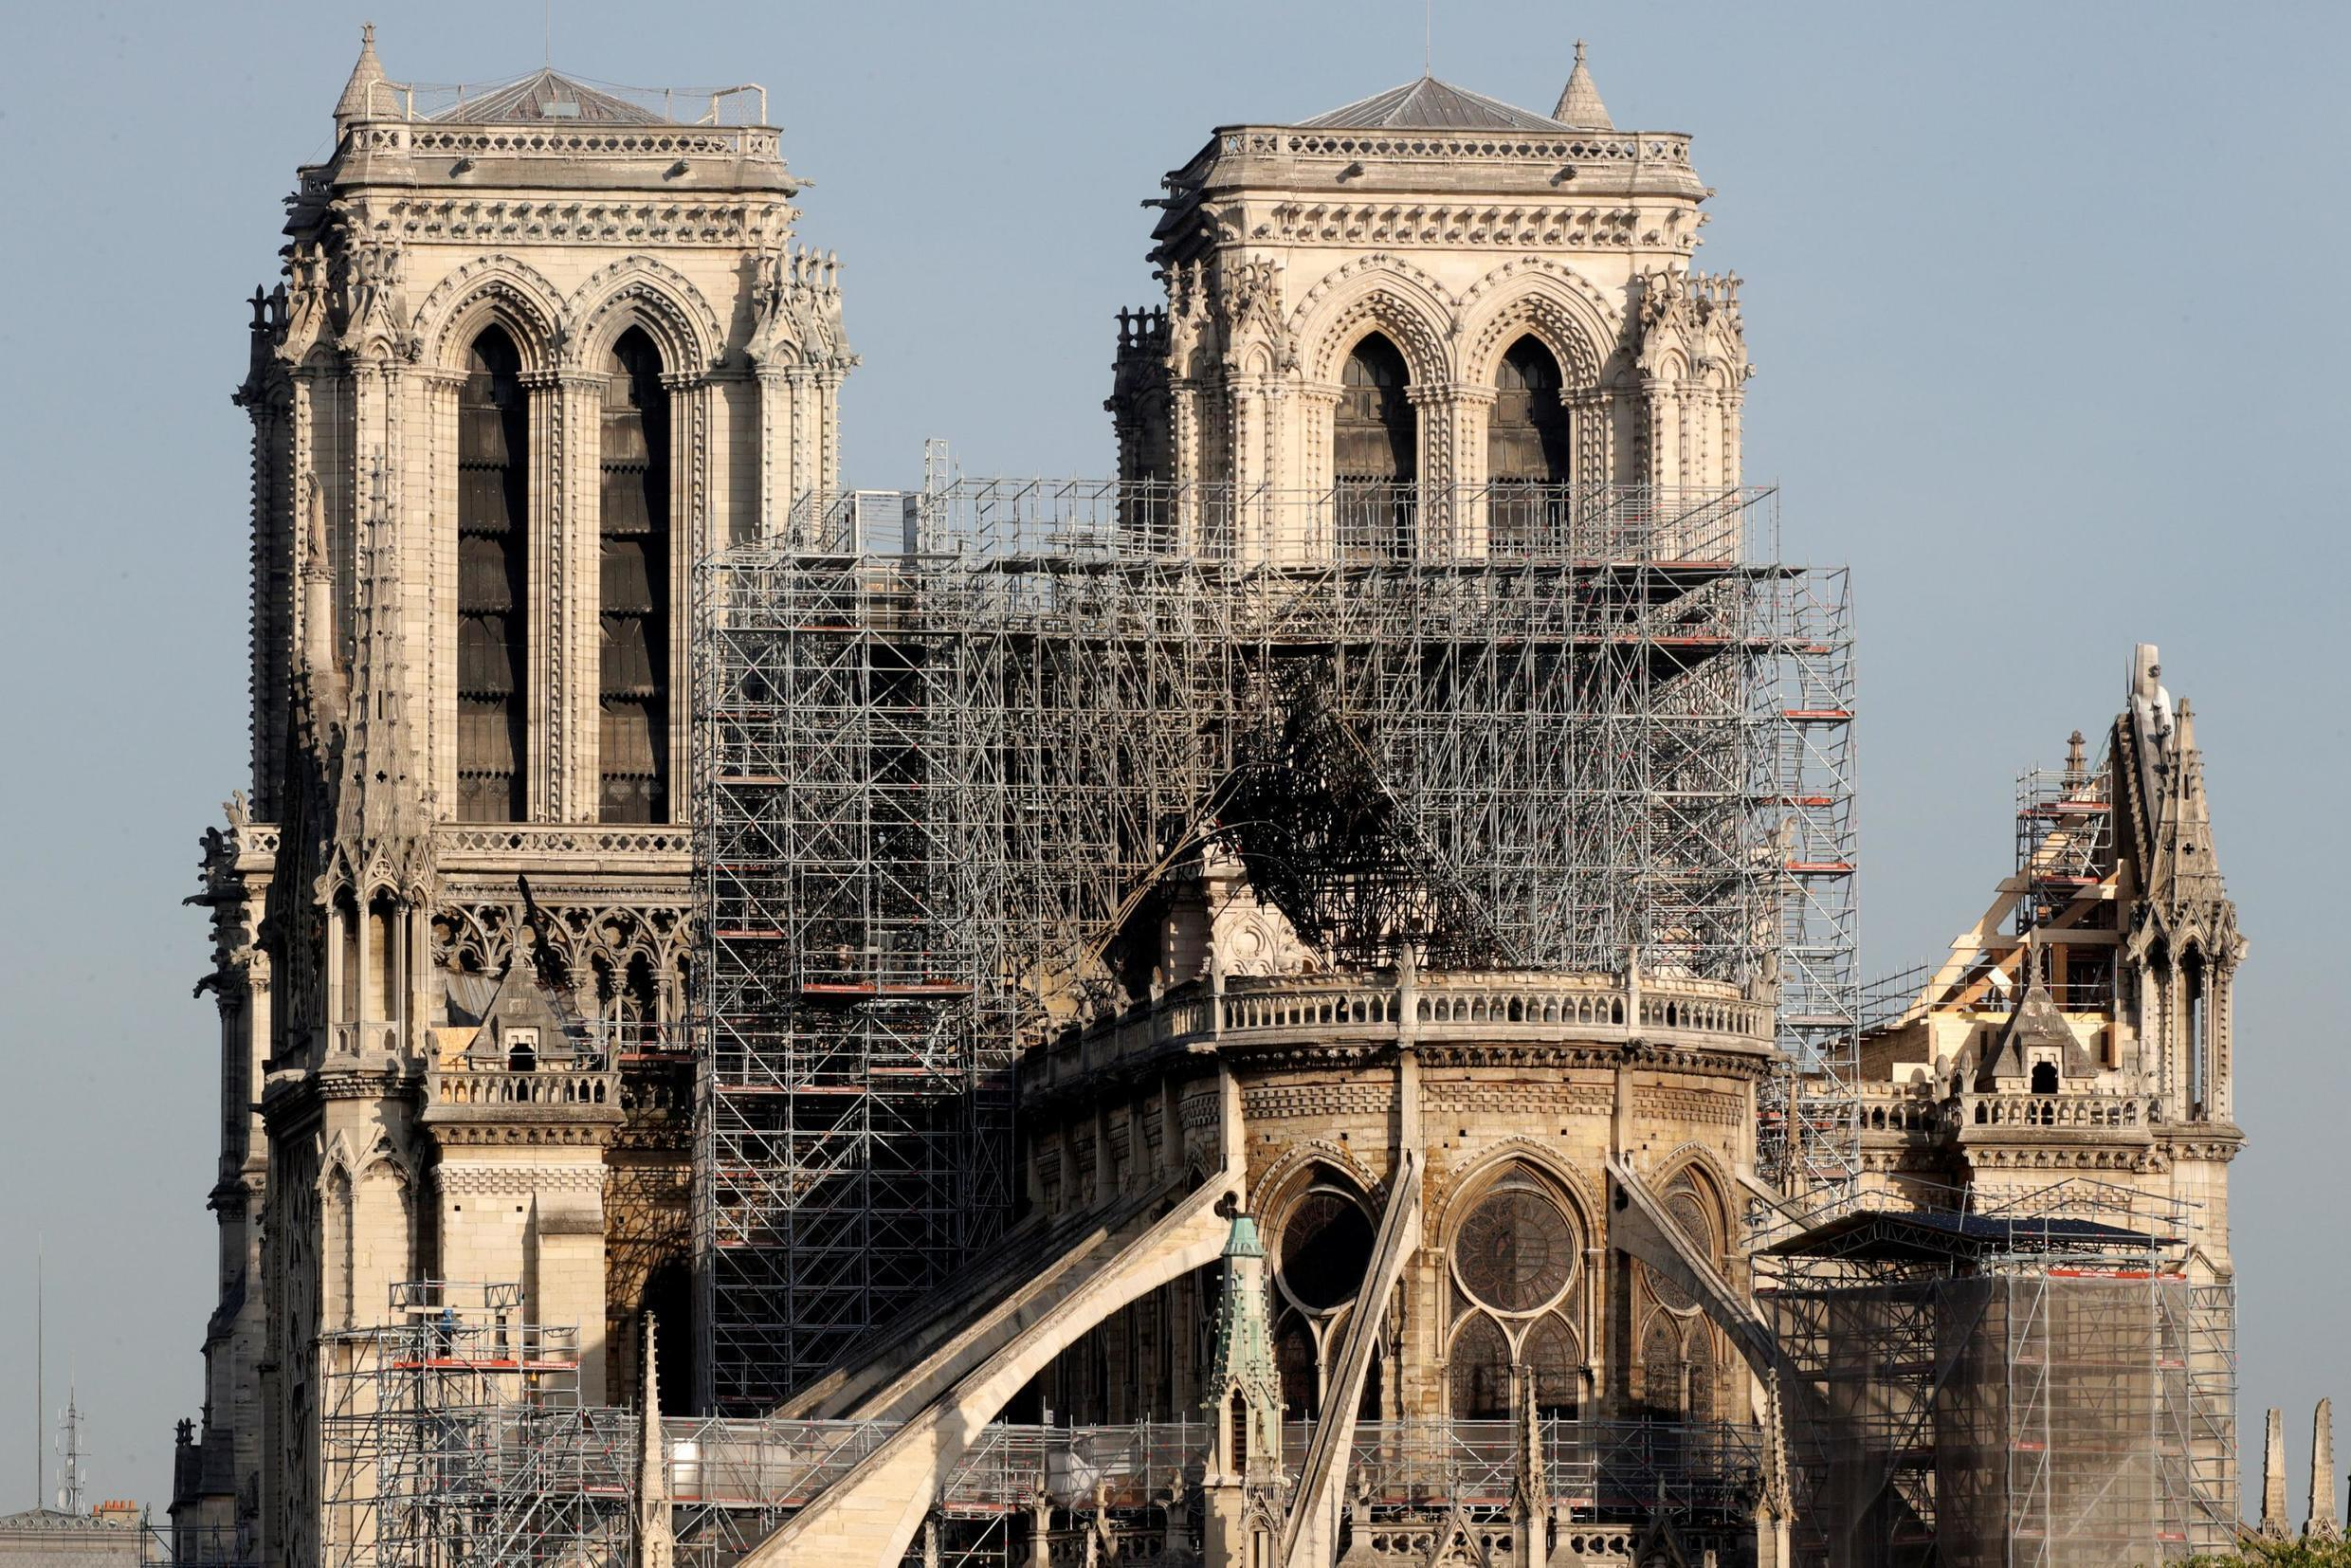 View of the rear of Notre-Dame Cathedral after a massive fire devastated large parts of the gothic structure in Paris, 19 April 2019.